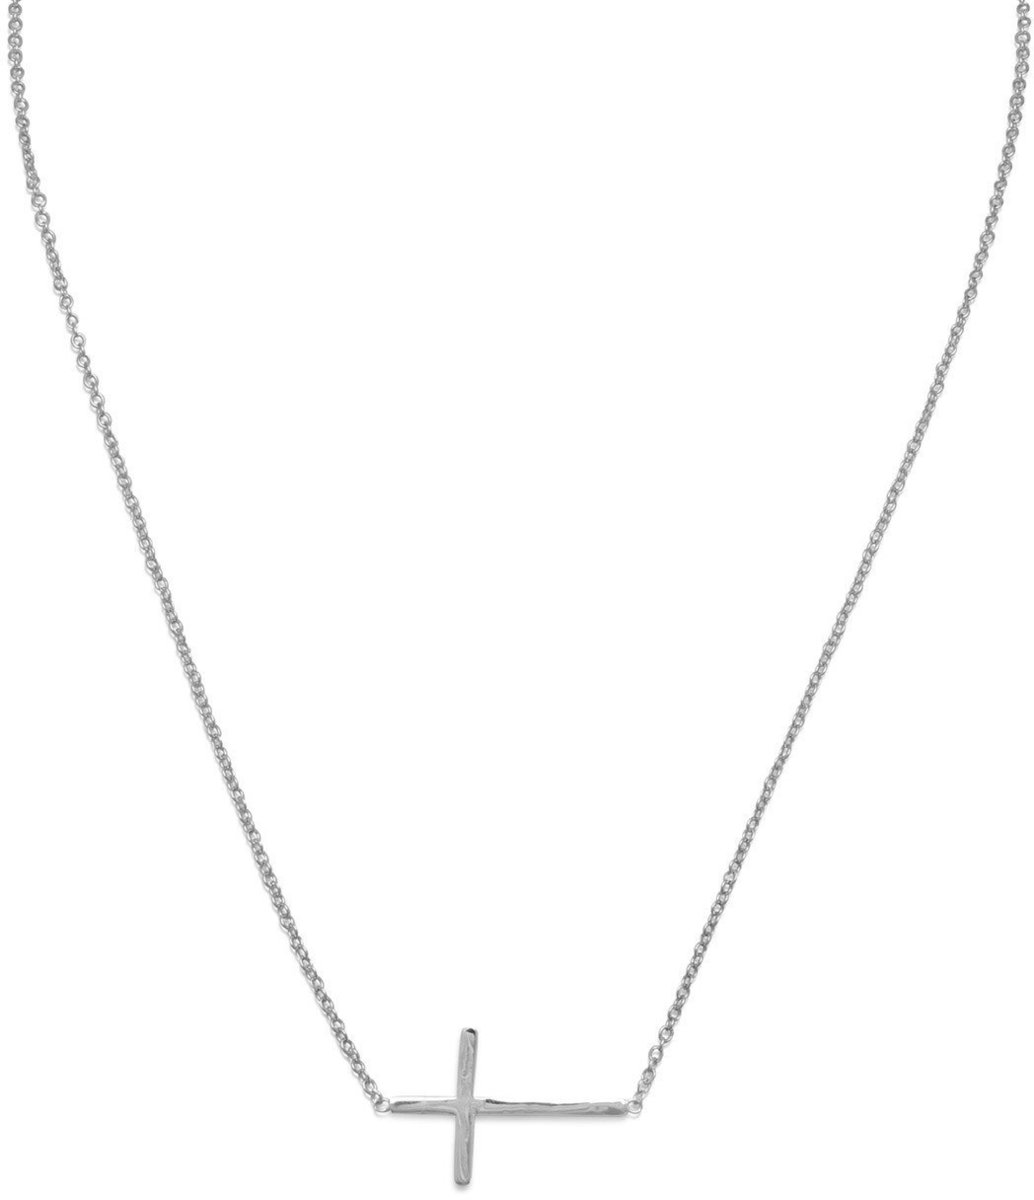 "16"" + 2"" Rhodium Plated Polished Sideways Cross Necklace 925 Sterling Silver"